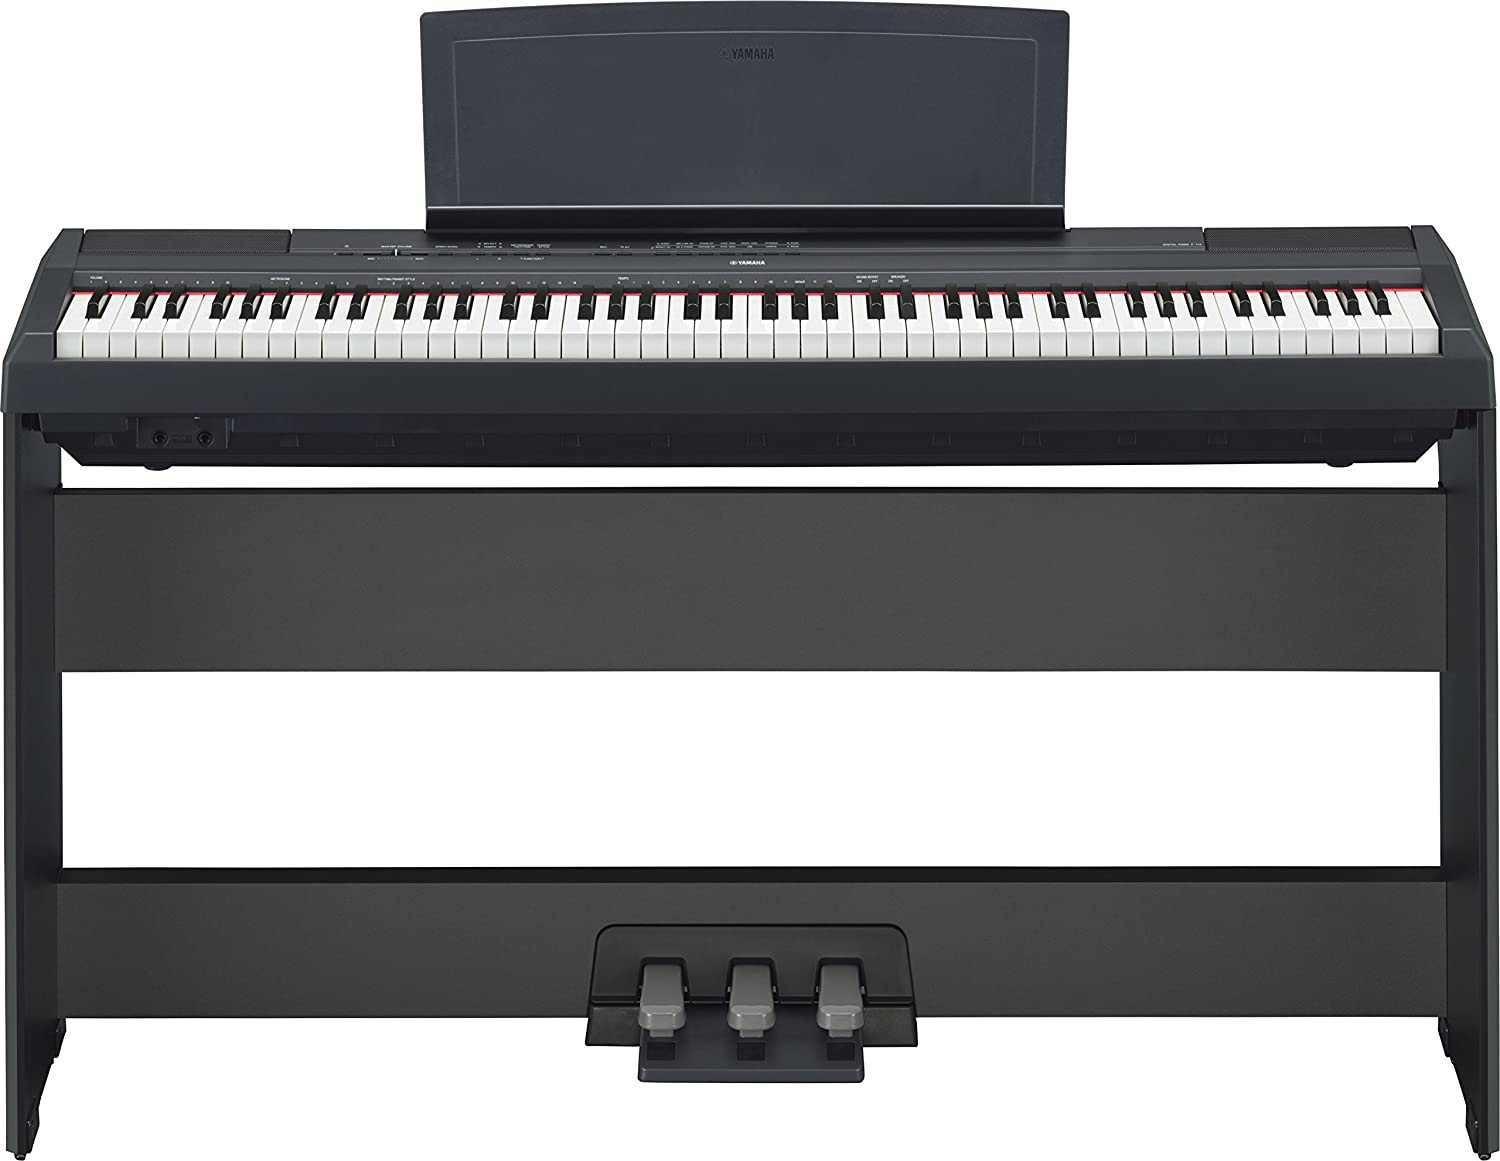 Amazon.com: Yamaha P115 88-Key Weighted Action Digital Piano with Sustain  Pedal, Black: Musical Instruments